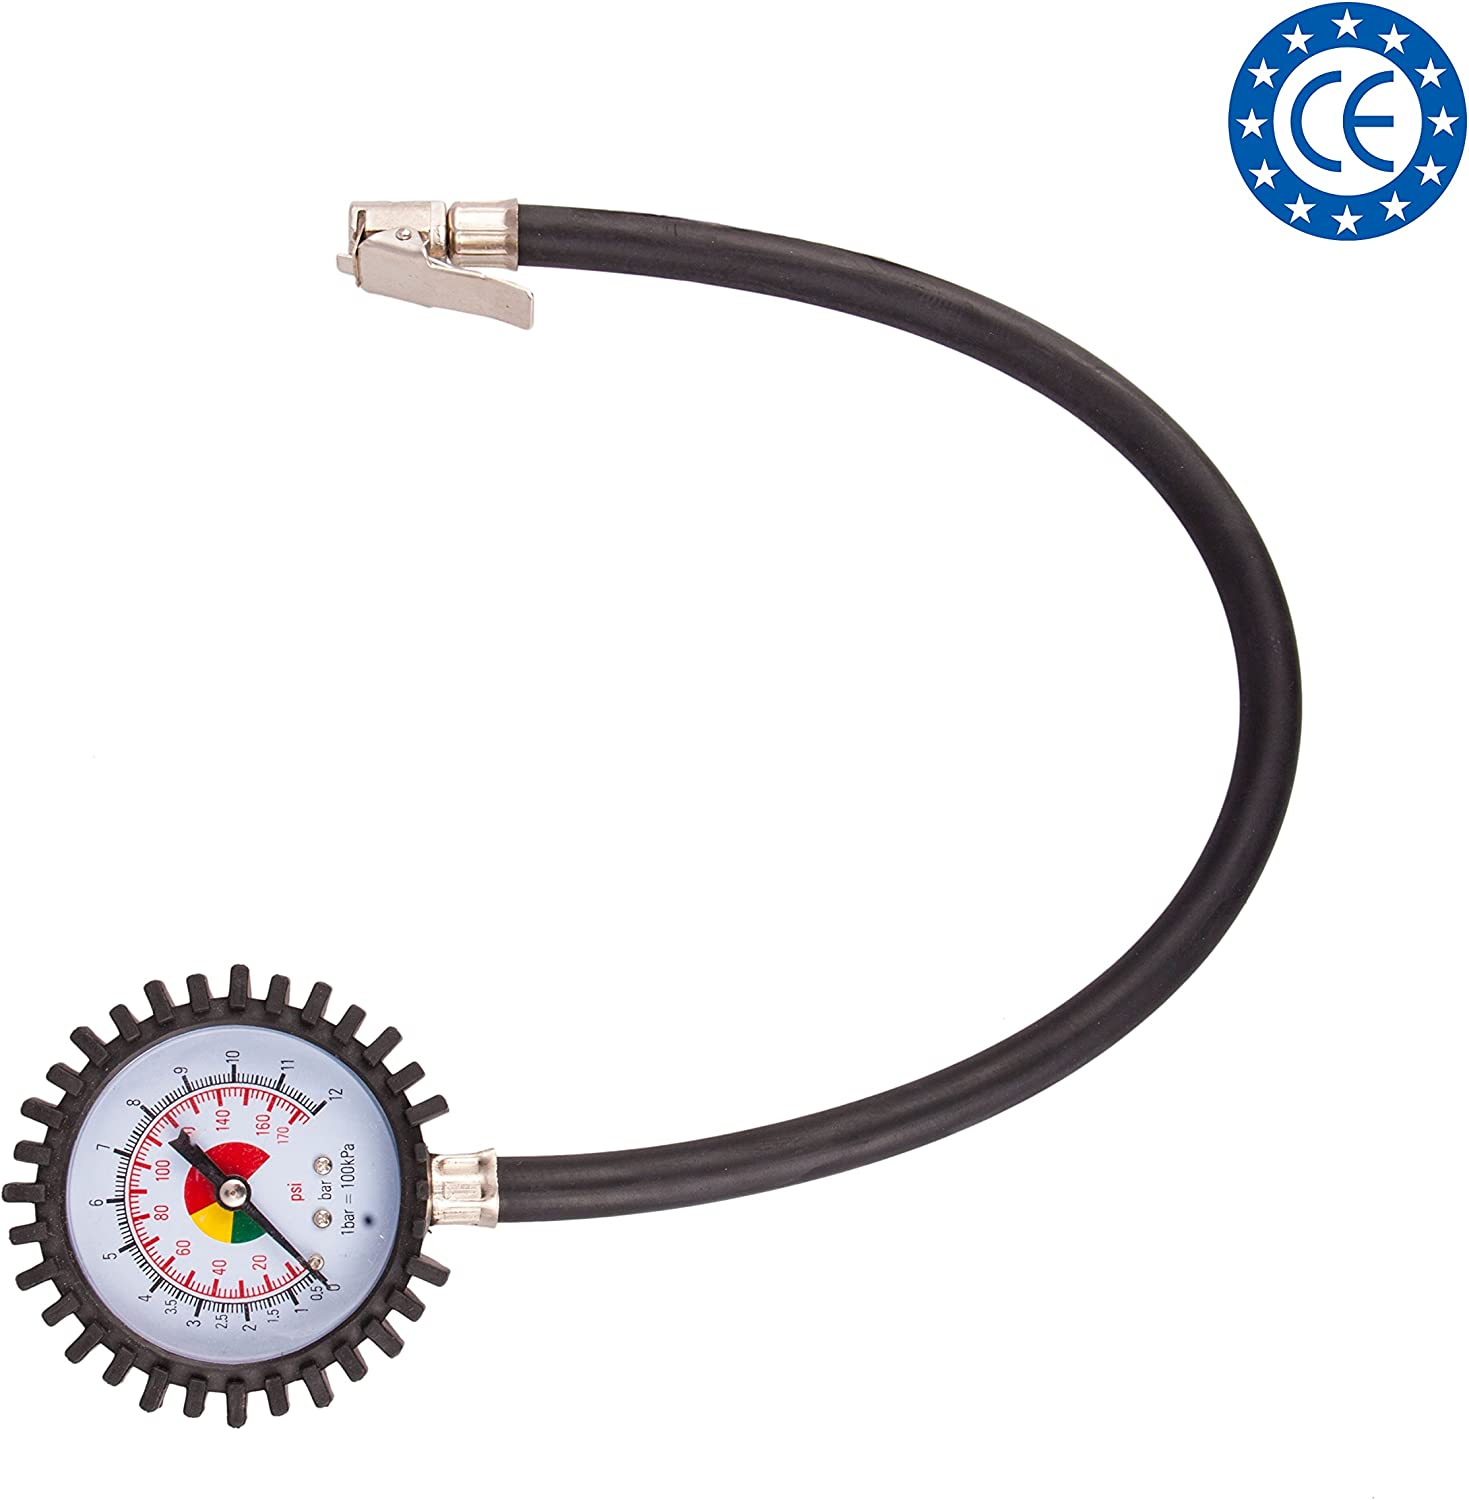 4CARS Tyre pressure gauge with flexible hose up to 15 BAR